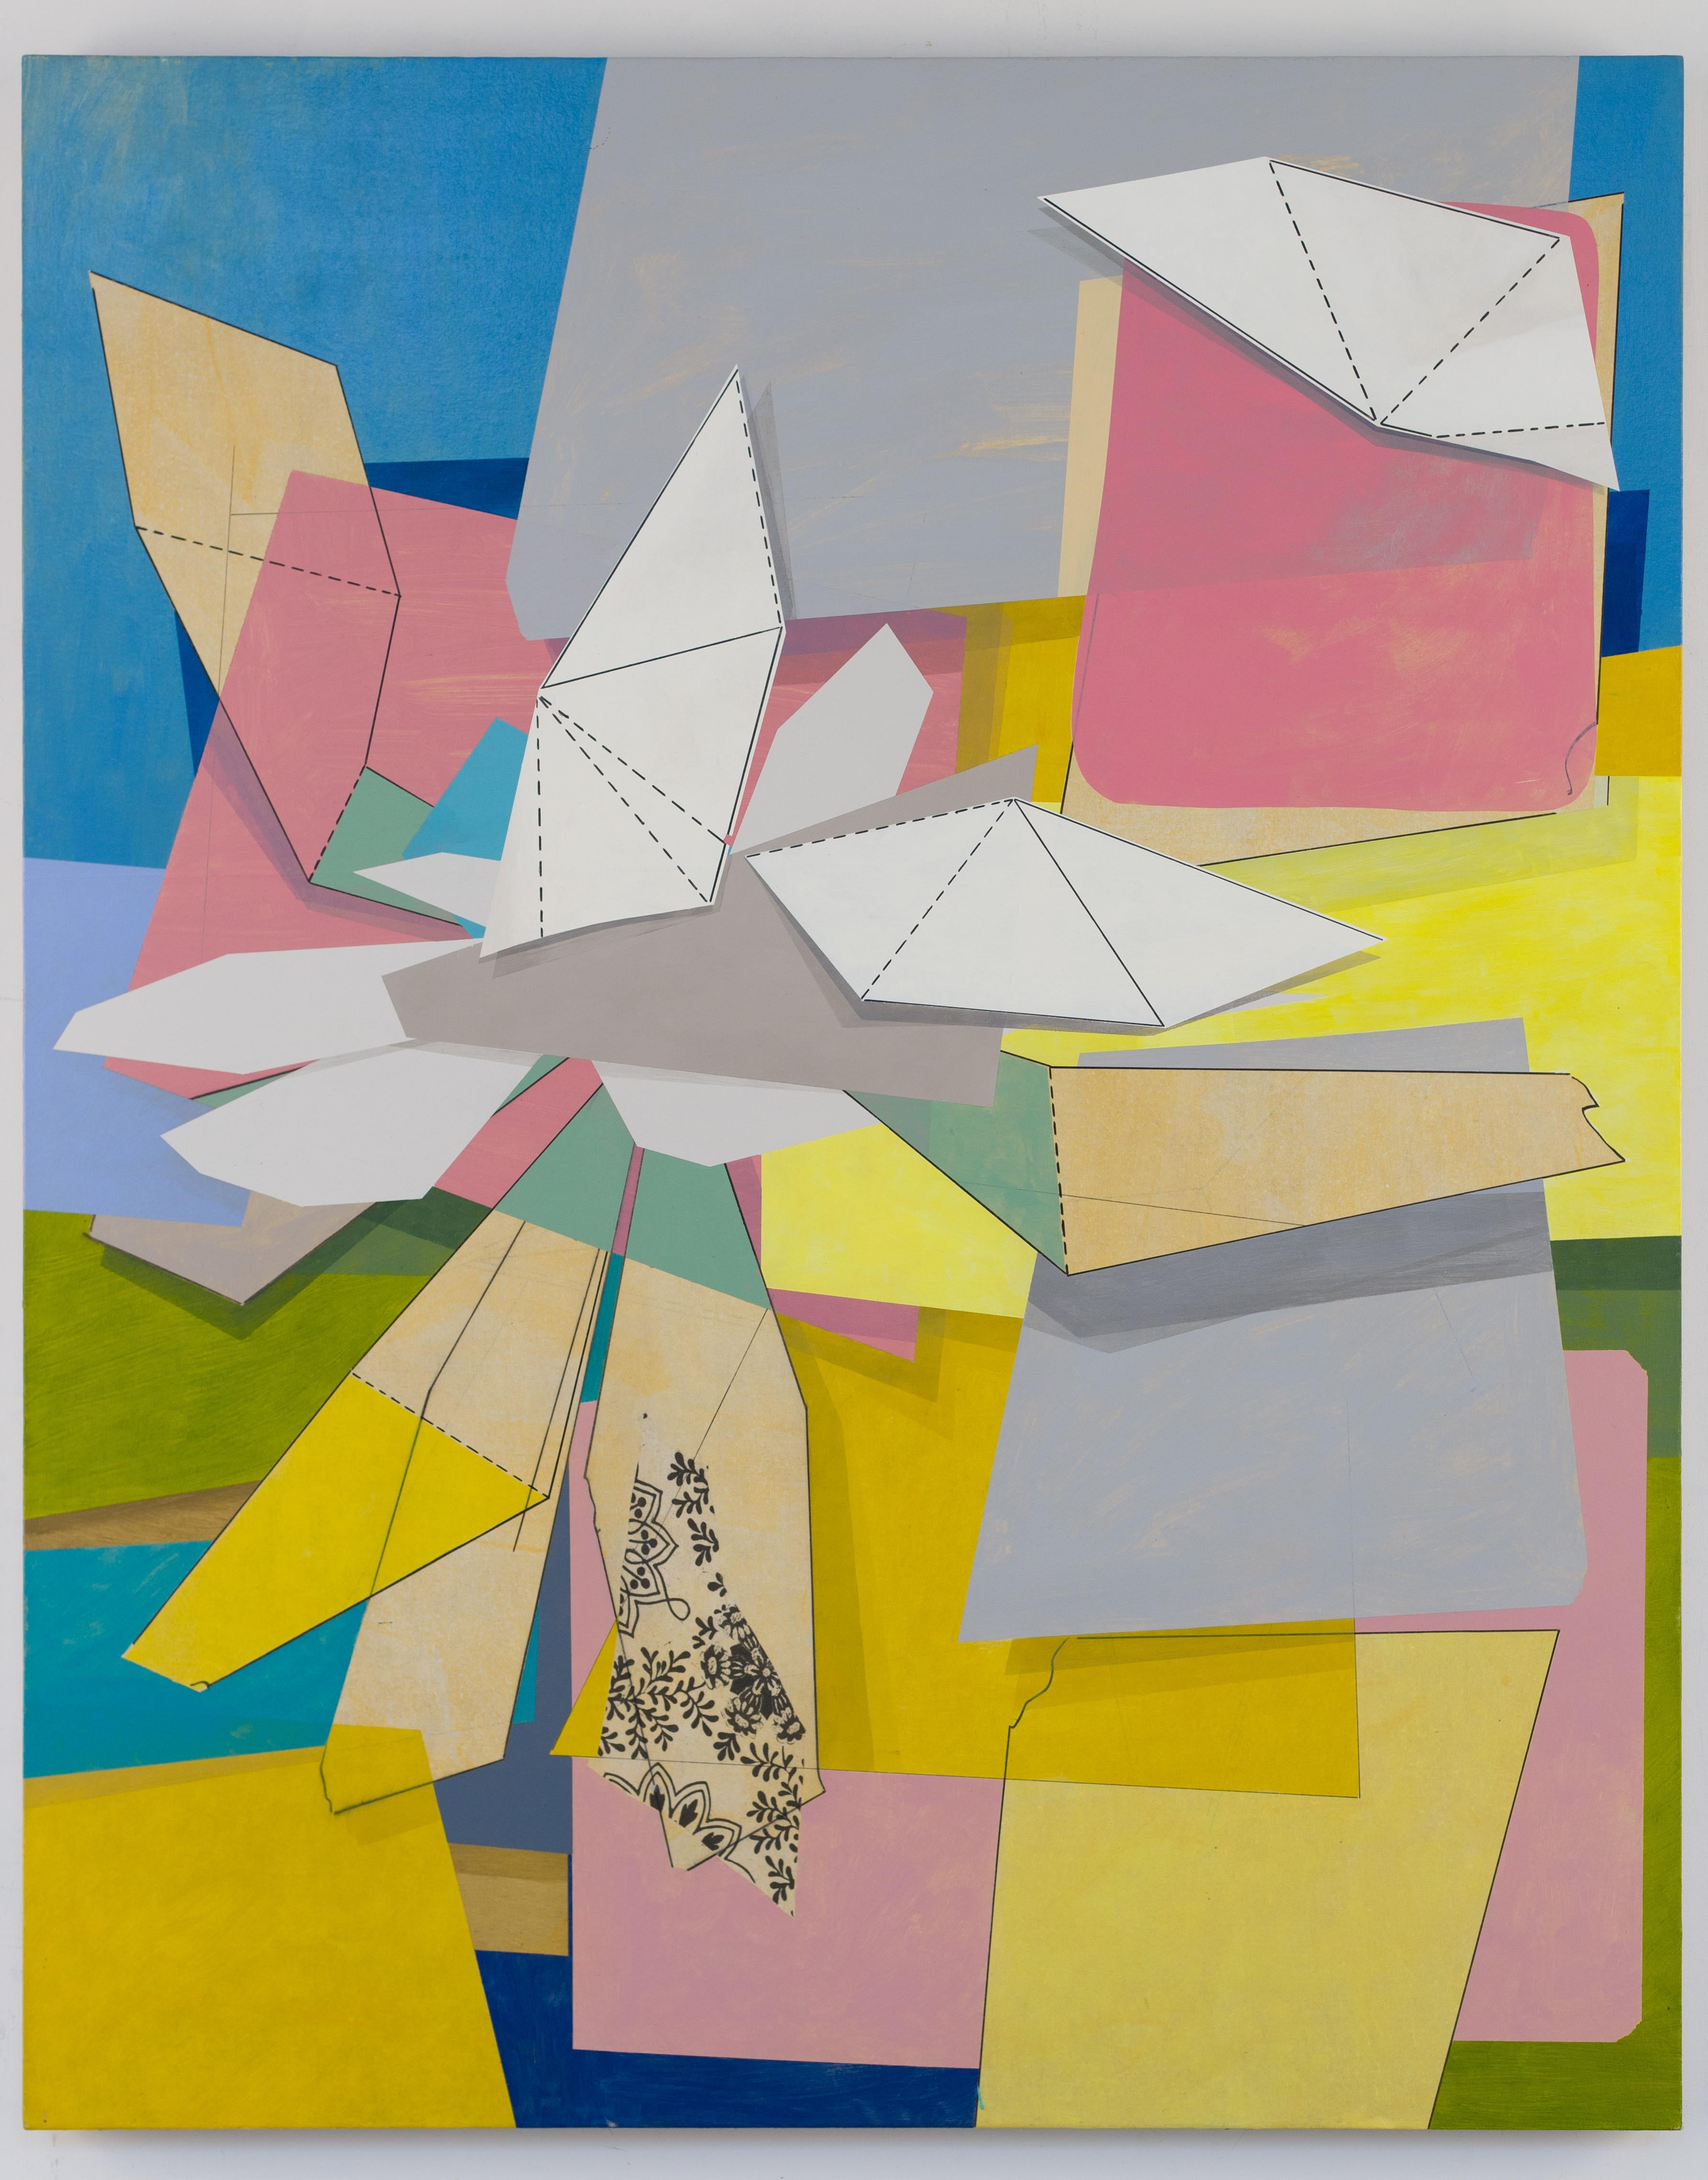 Untitled, blue, pink and yellow geometric abstract painting on linen